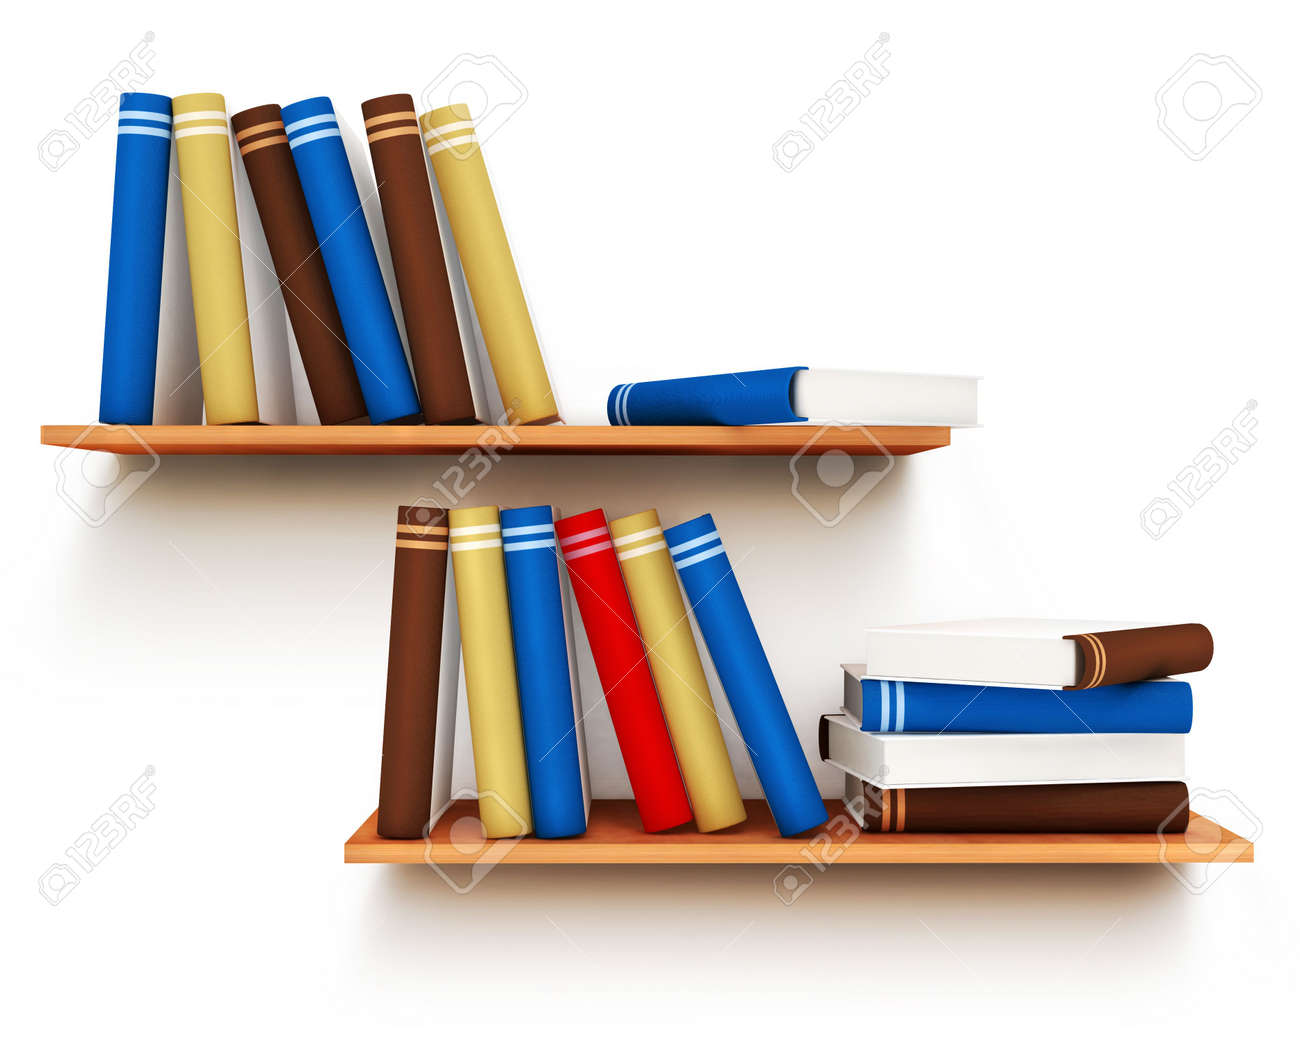 Realistic 3d illustration of modern wooden bookshelf against ston - 3d Bookshelf Color Books With Blank Covers Standing On The Wall Bookshelf Isolated 3d Illustration